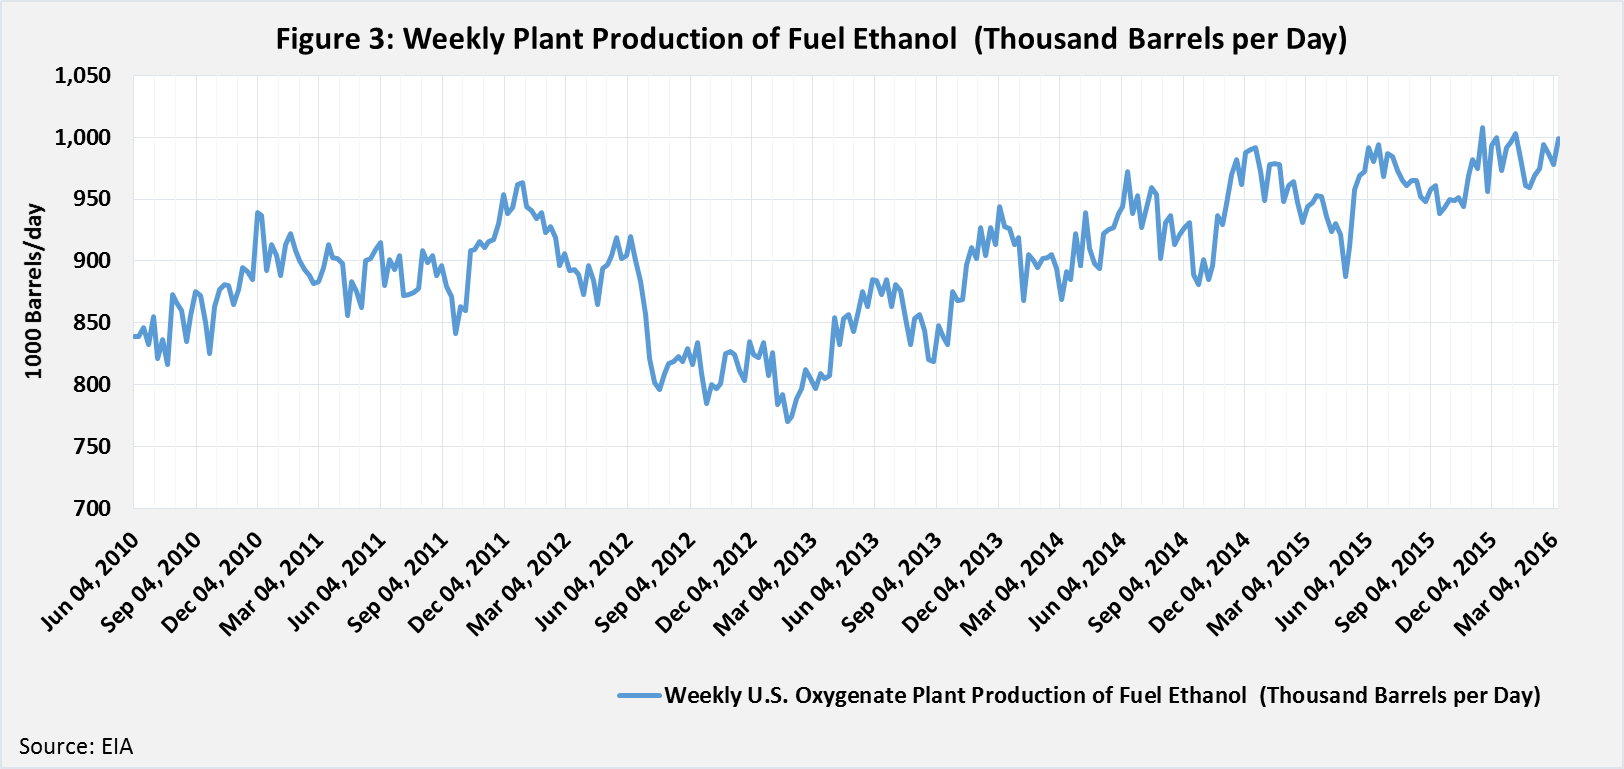 Weekly Plant Production of Fuel Ethanol